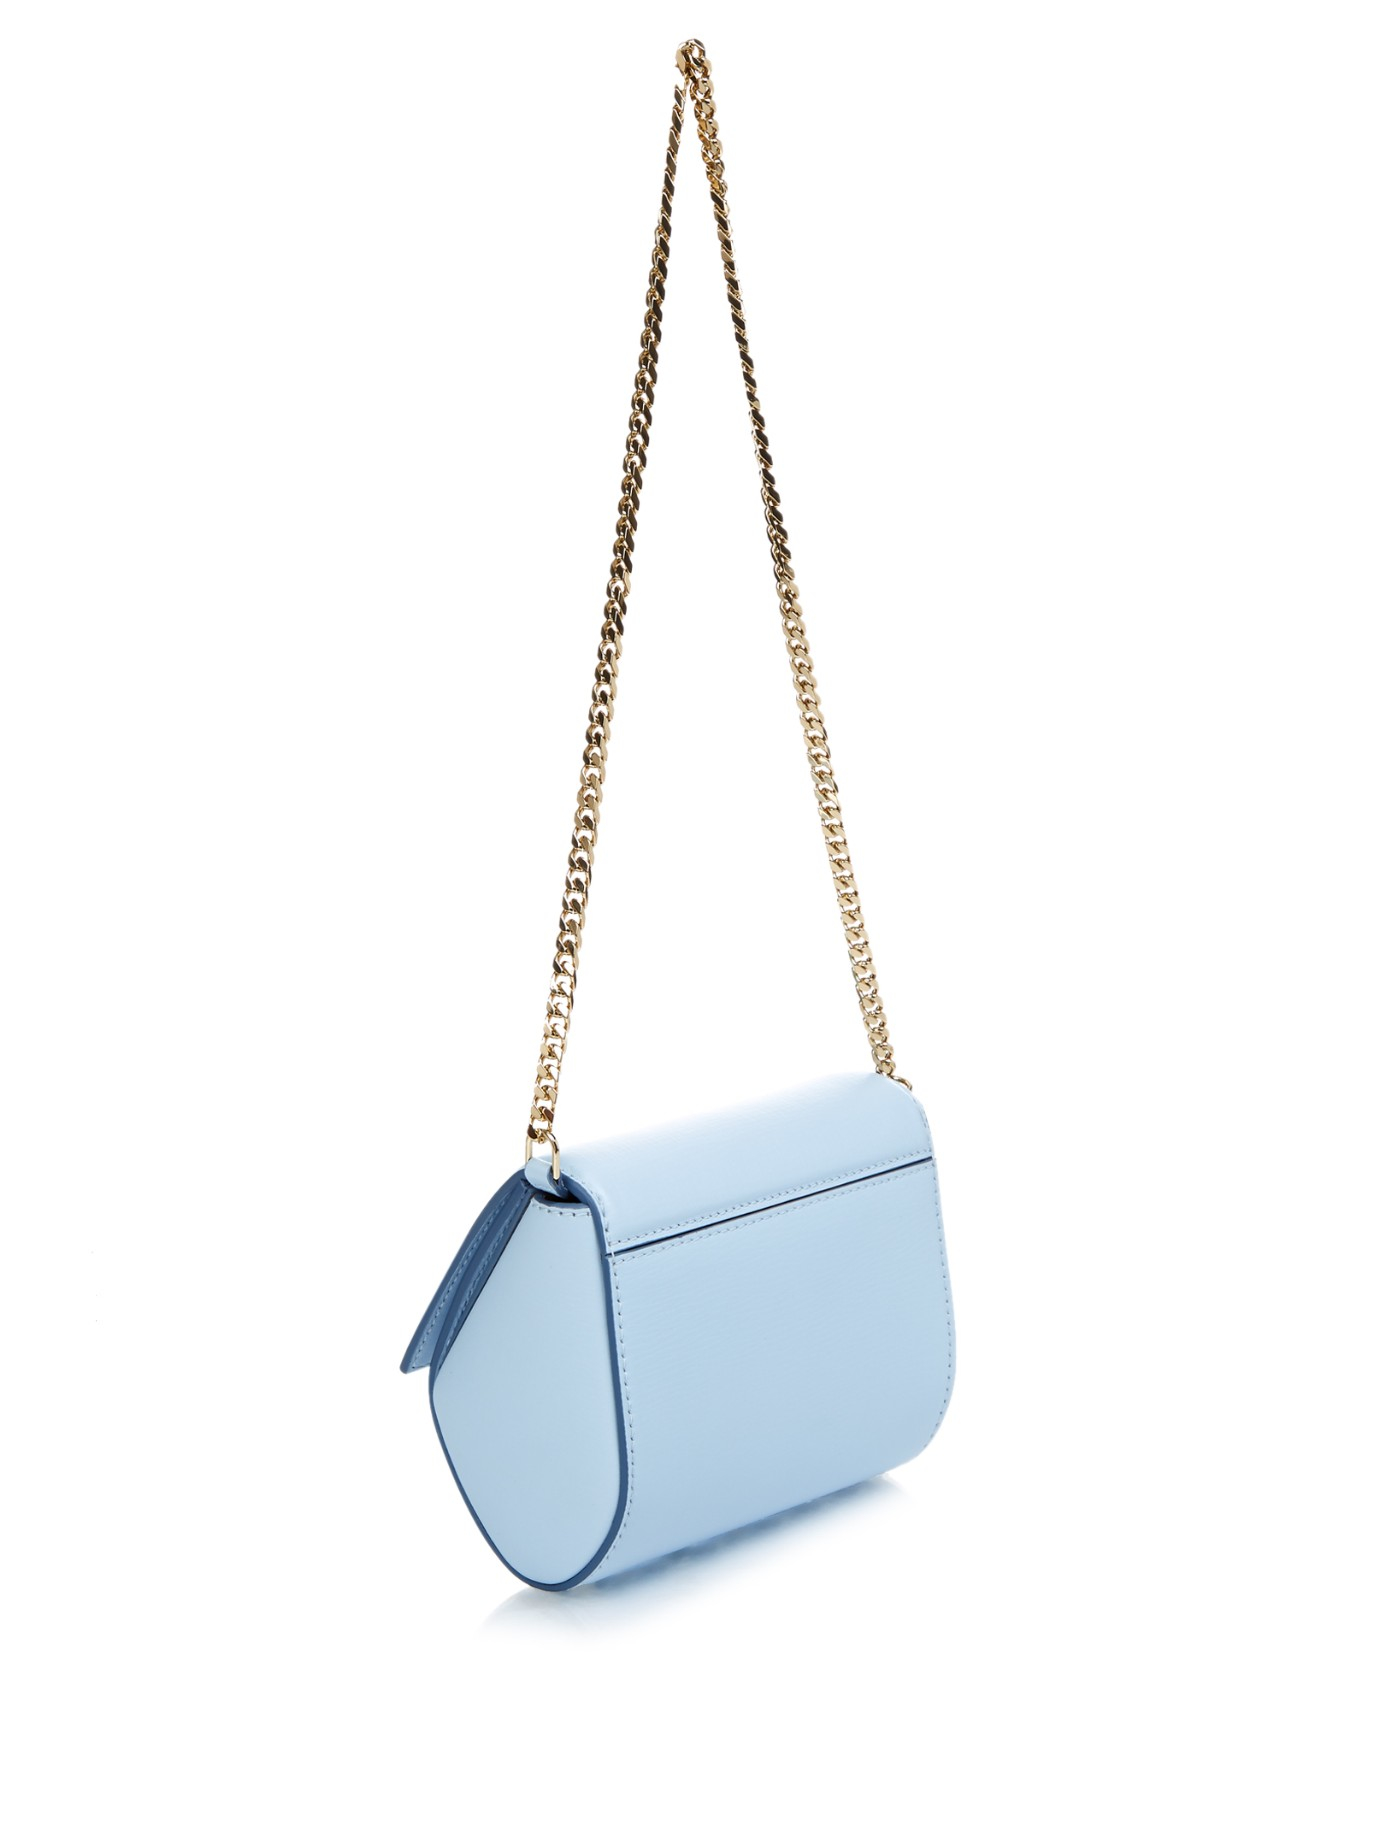 Lyst - Givenchy Pandora Box Leather Cross-Body Bag in Blue 4498357a25363